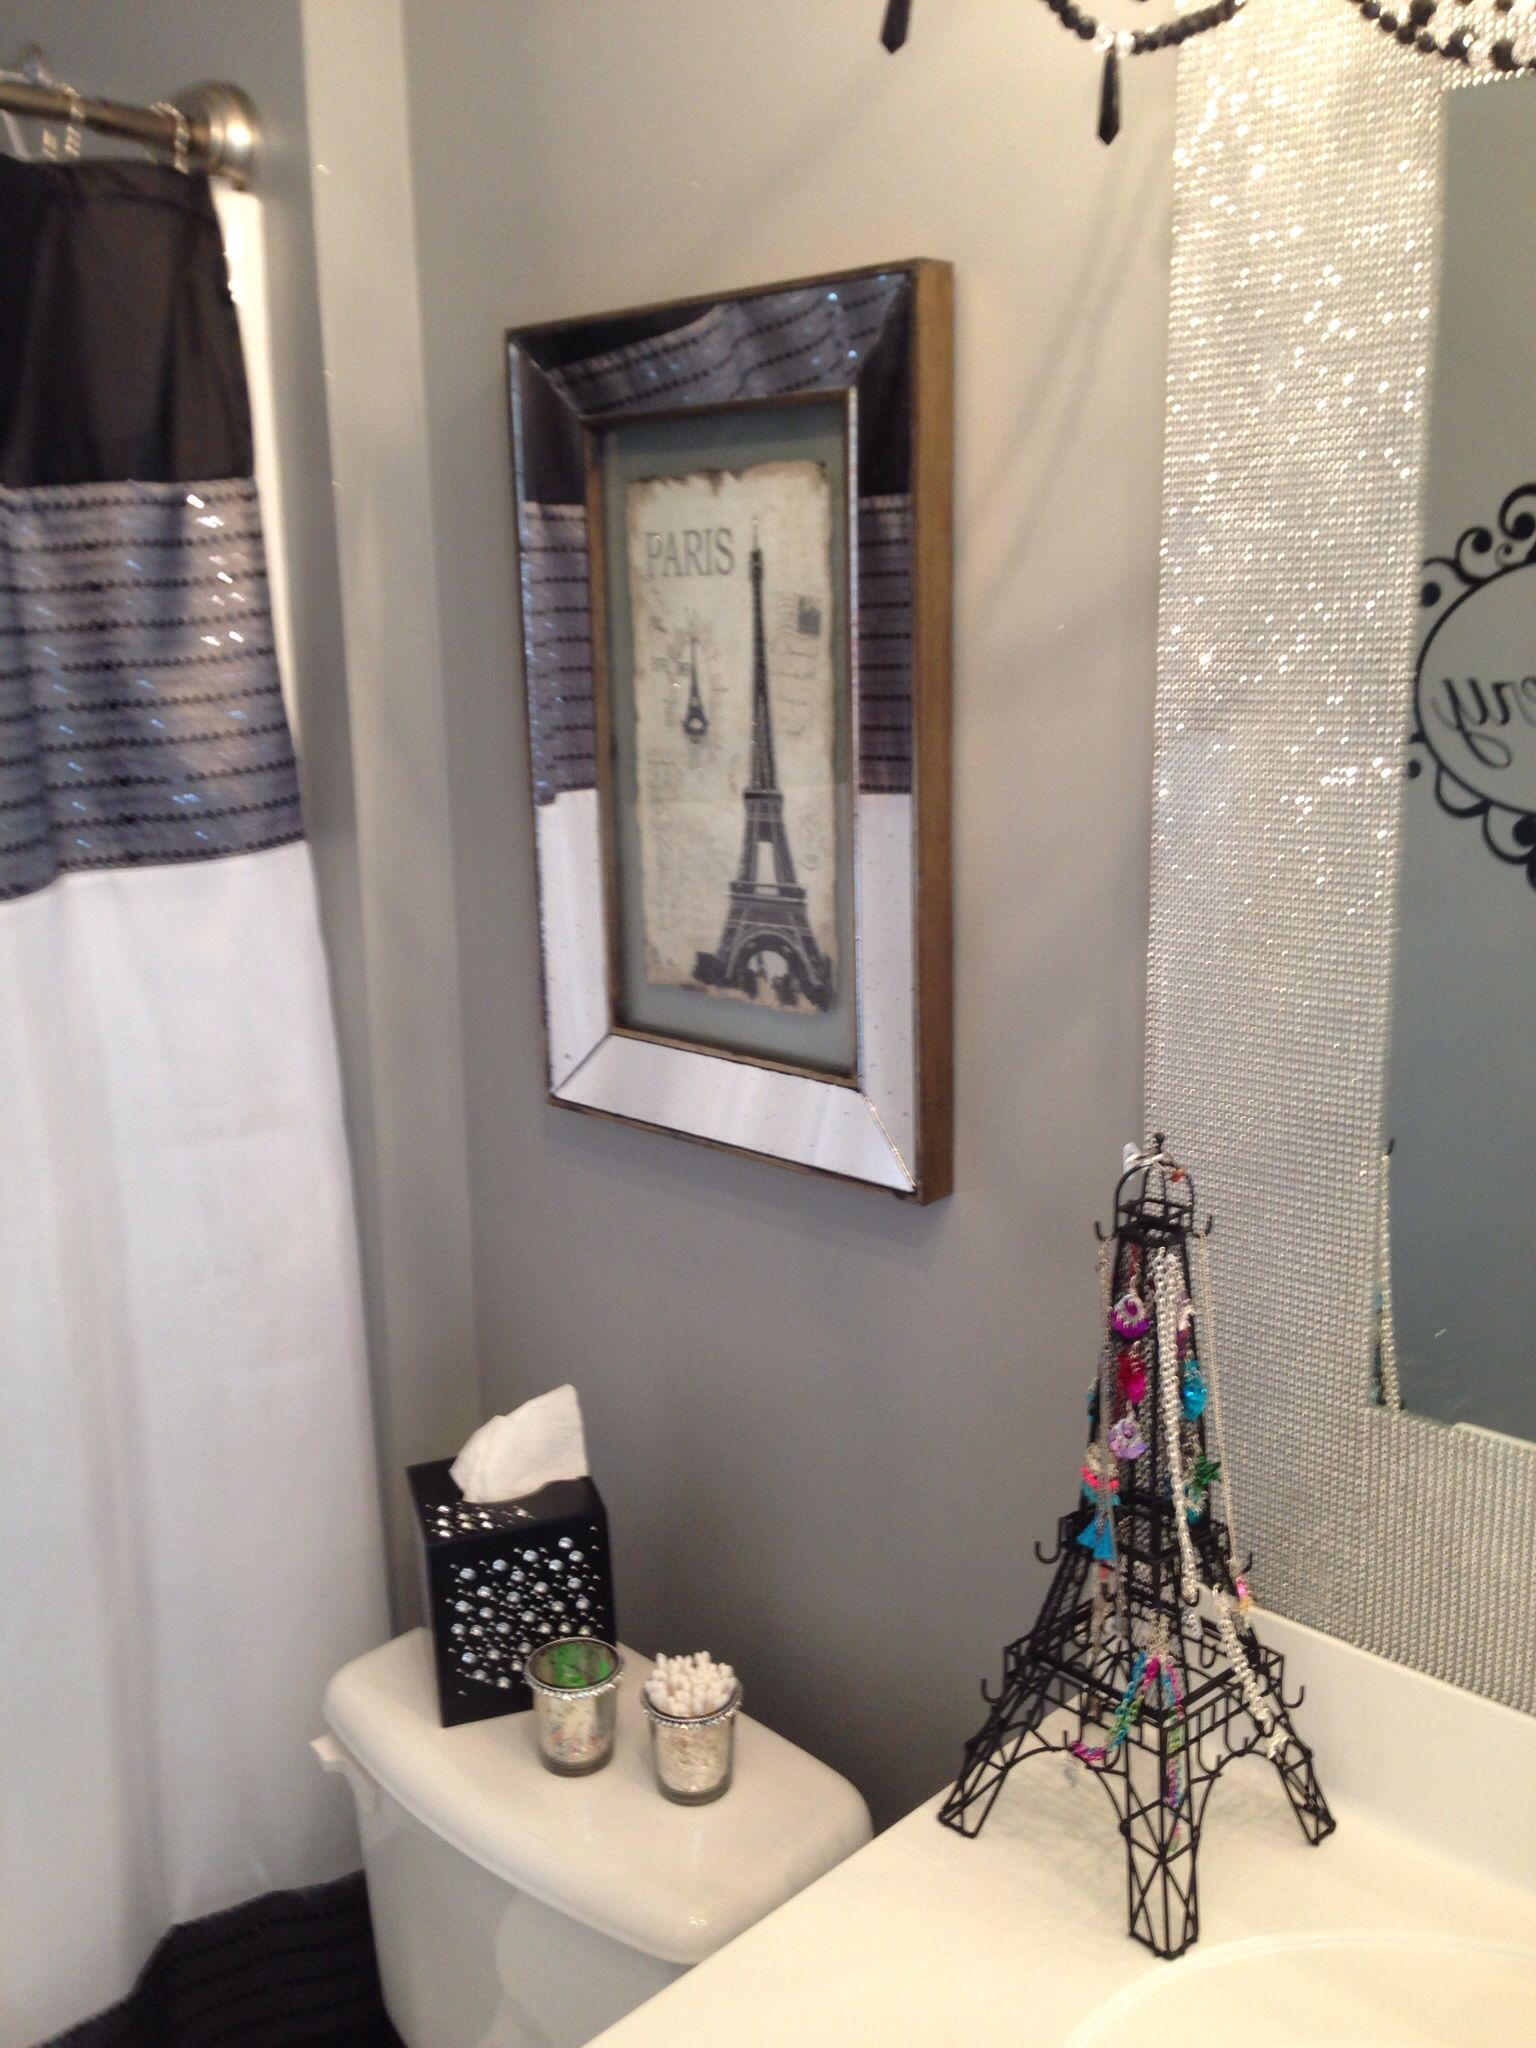 Delightful Glitter Painted Walls   Valspar Paint With 6 Bags Of Glitter. Did My  Research And. Bathroom CurtainsBathrooms DecorDream ...